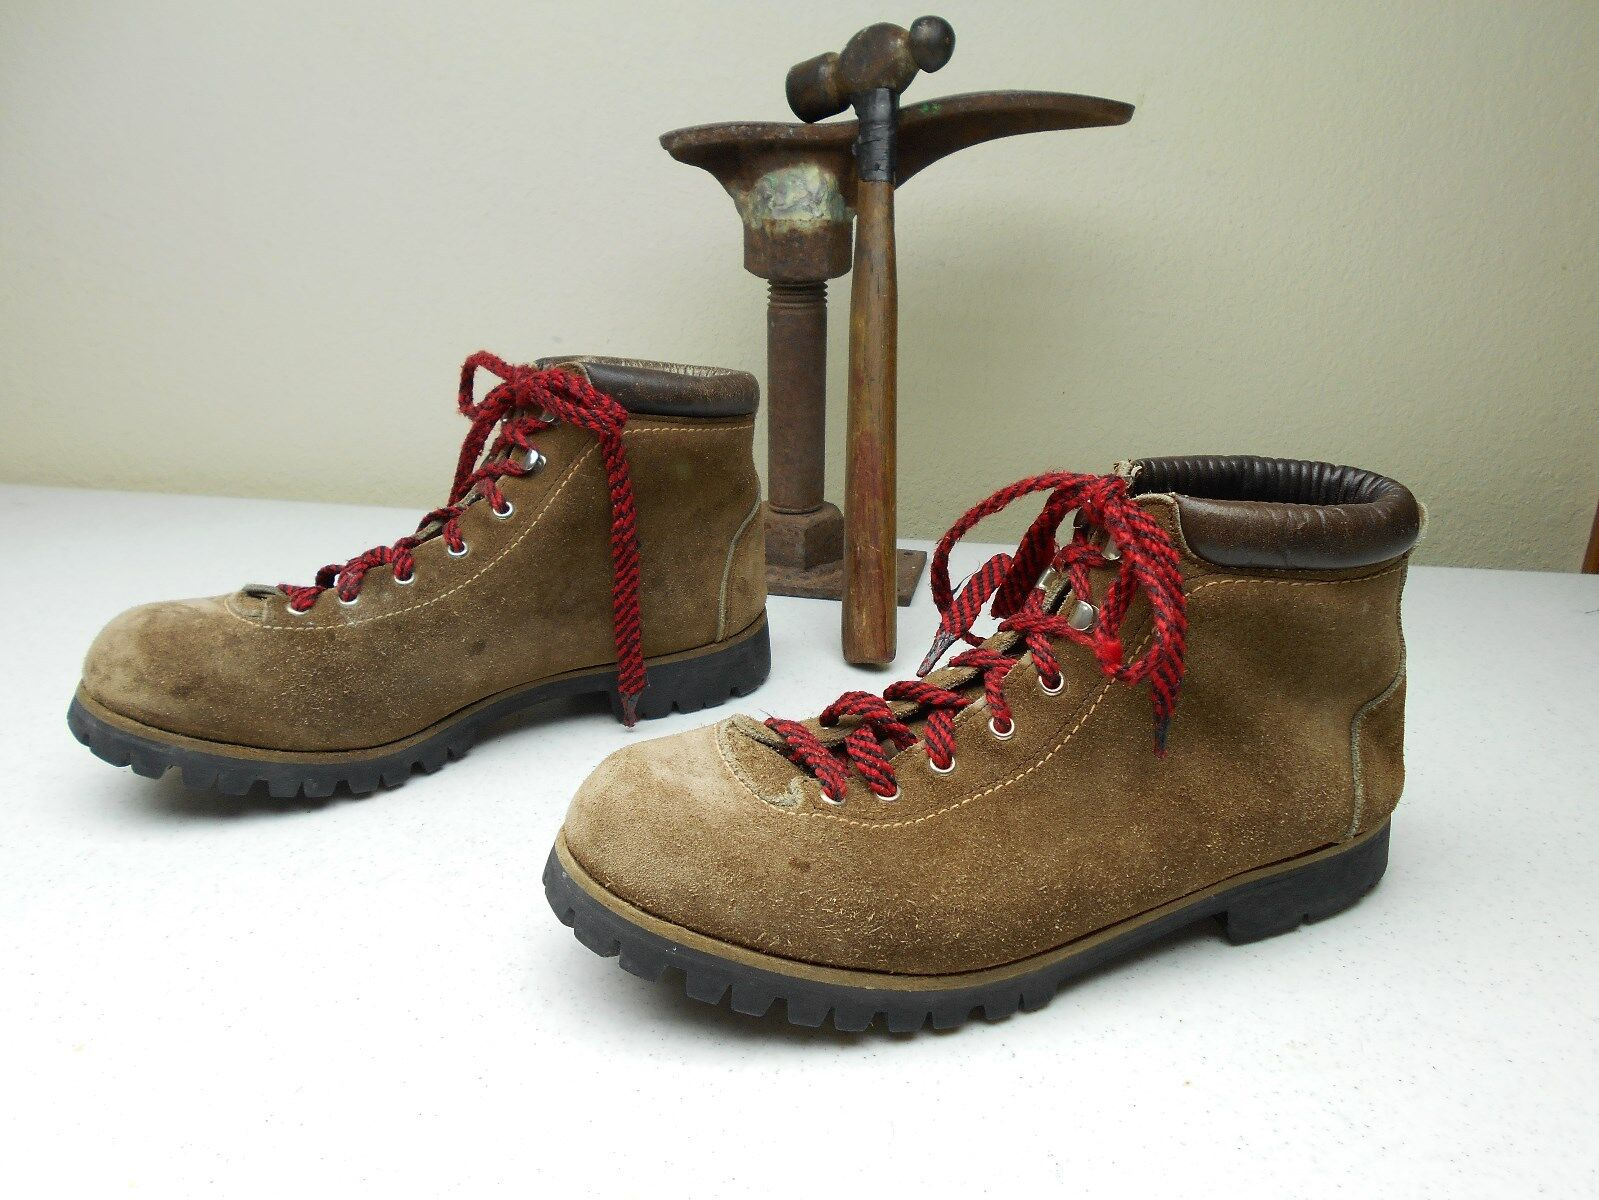 DISTRESSED BROWN VASQUE COUNTRY HIKING TRAIL MOUNTAINEERING BOOTS 9.5 -10 D